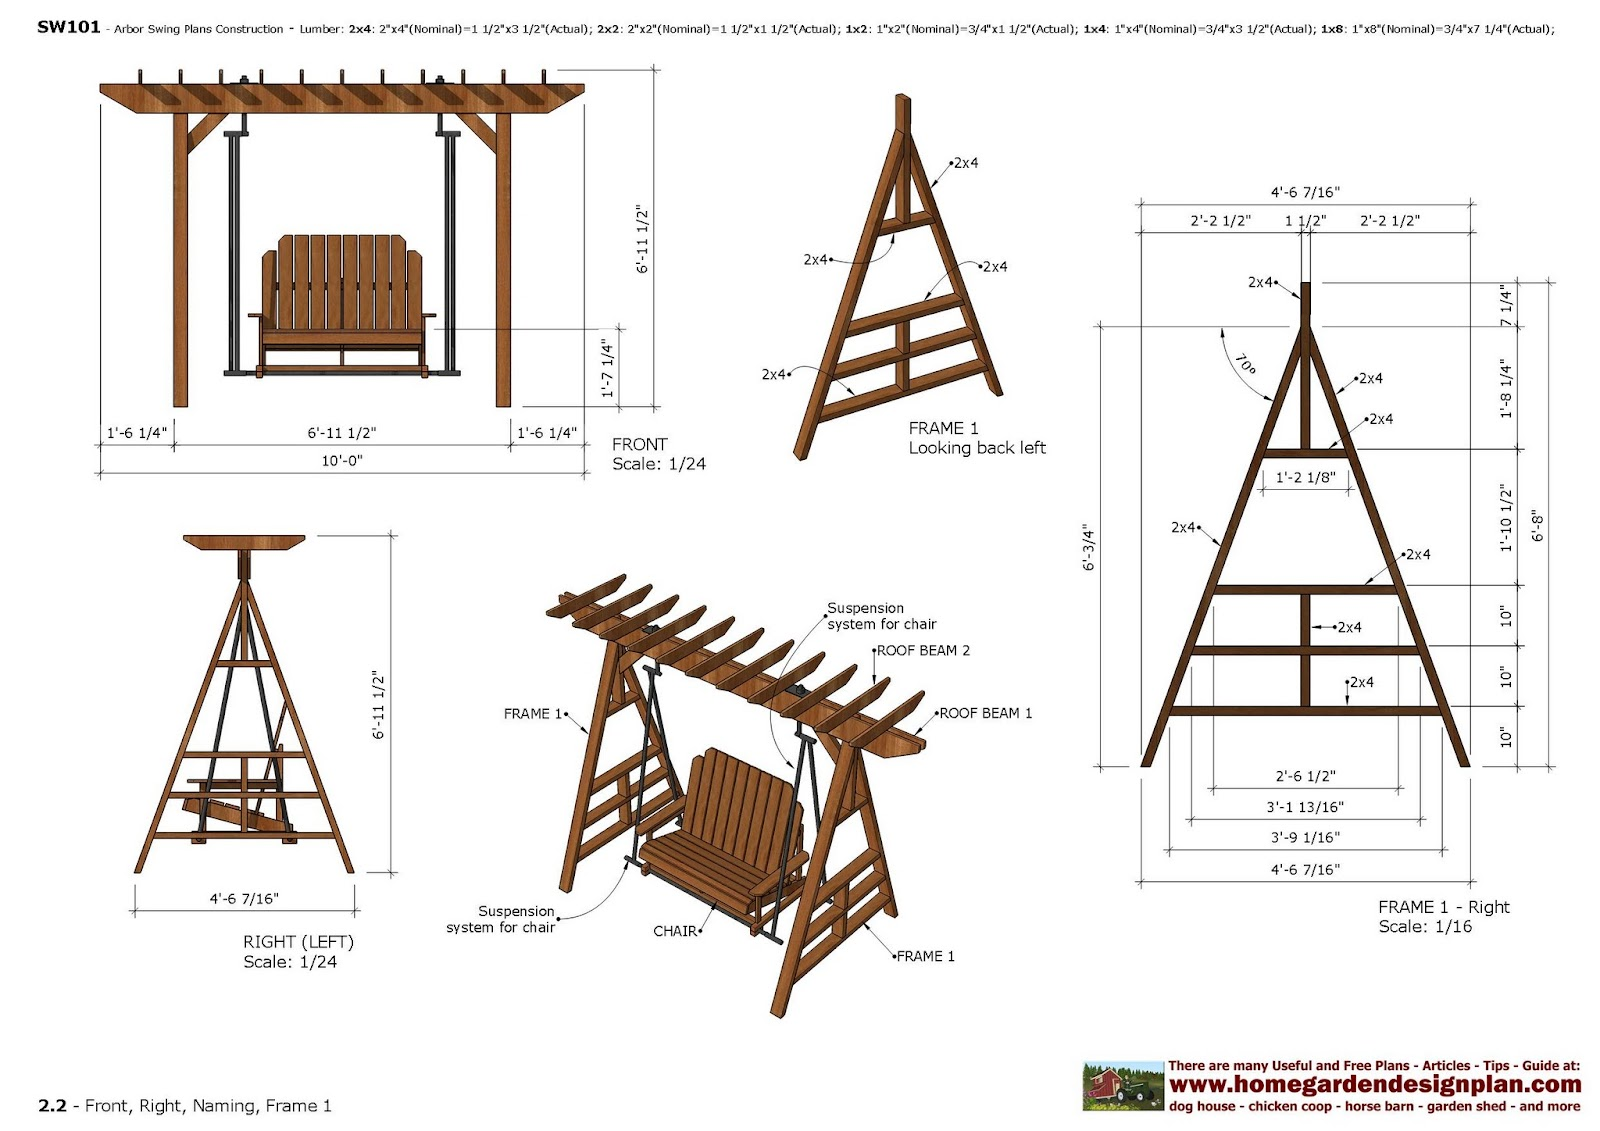 Home garden plans 2015 for How to build a swing chair